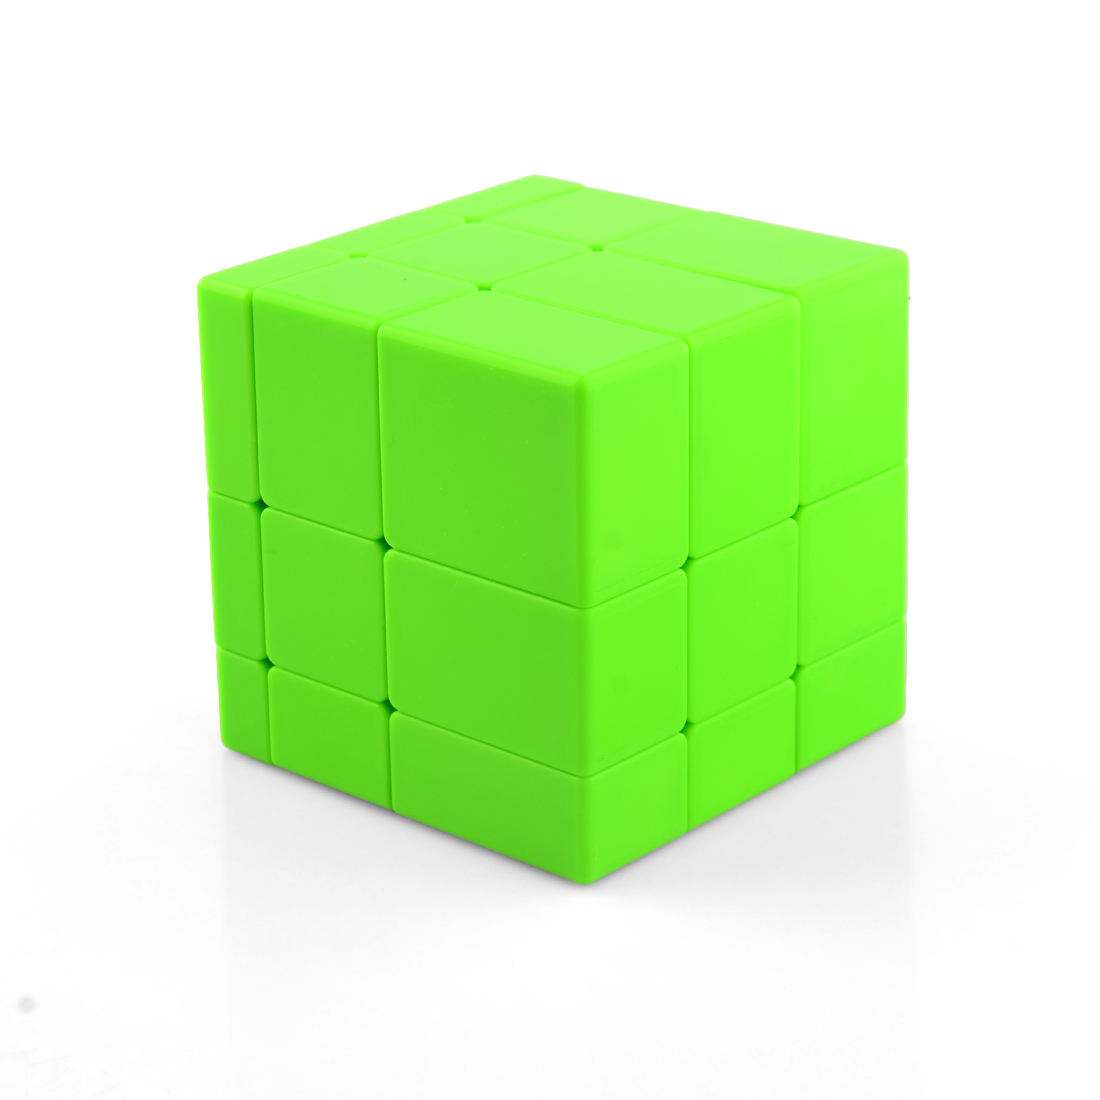 Mirror Cube QiYi 3X3 Mirror Blocks Magic Cube Puzzle Toys for Kids Beginner Gift Magic C ...